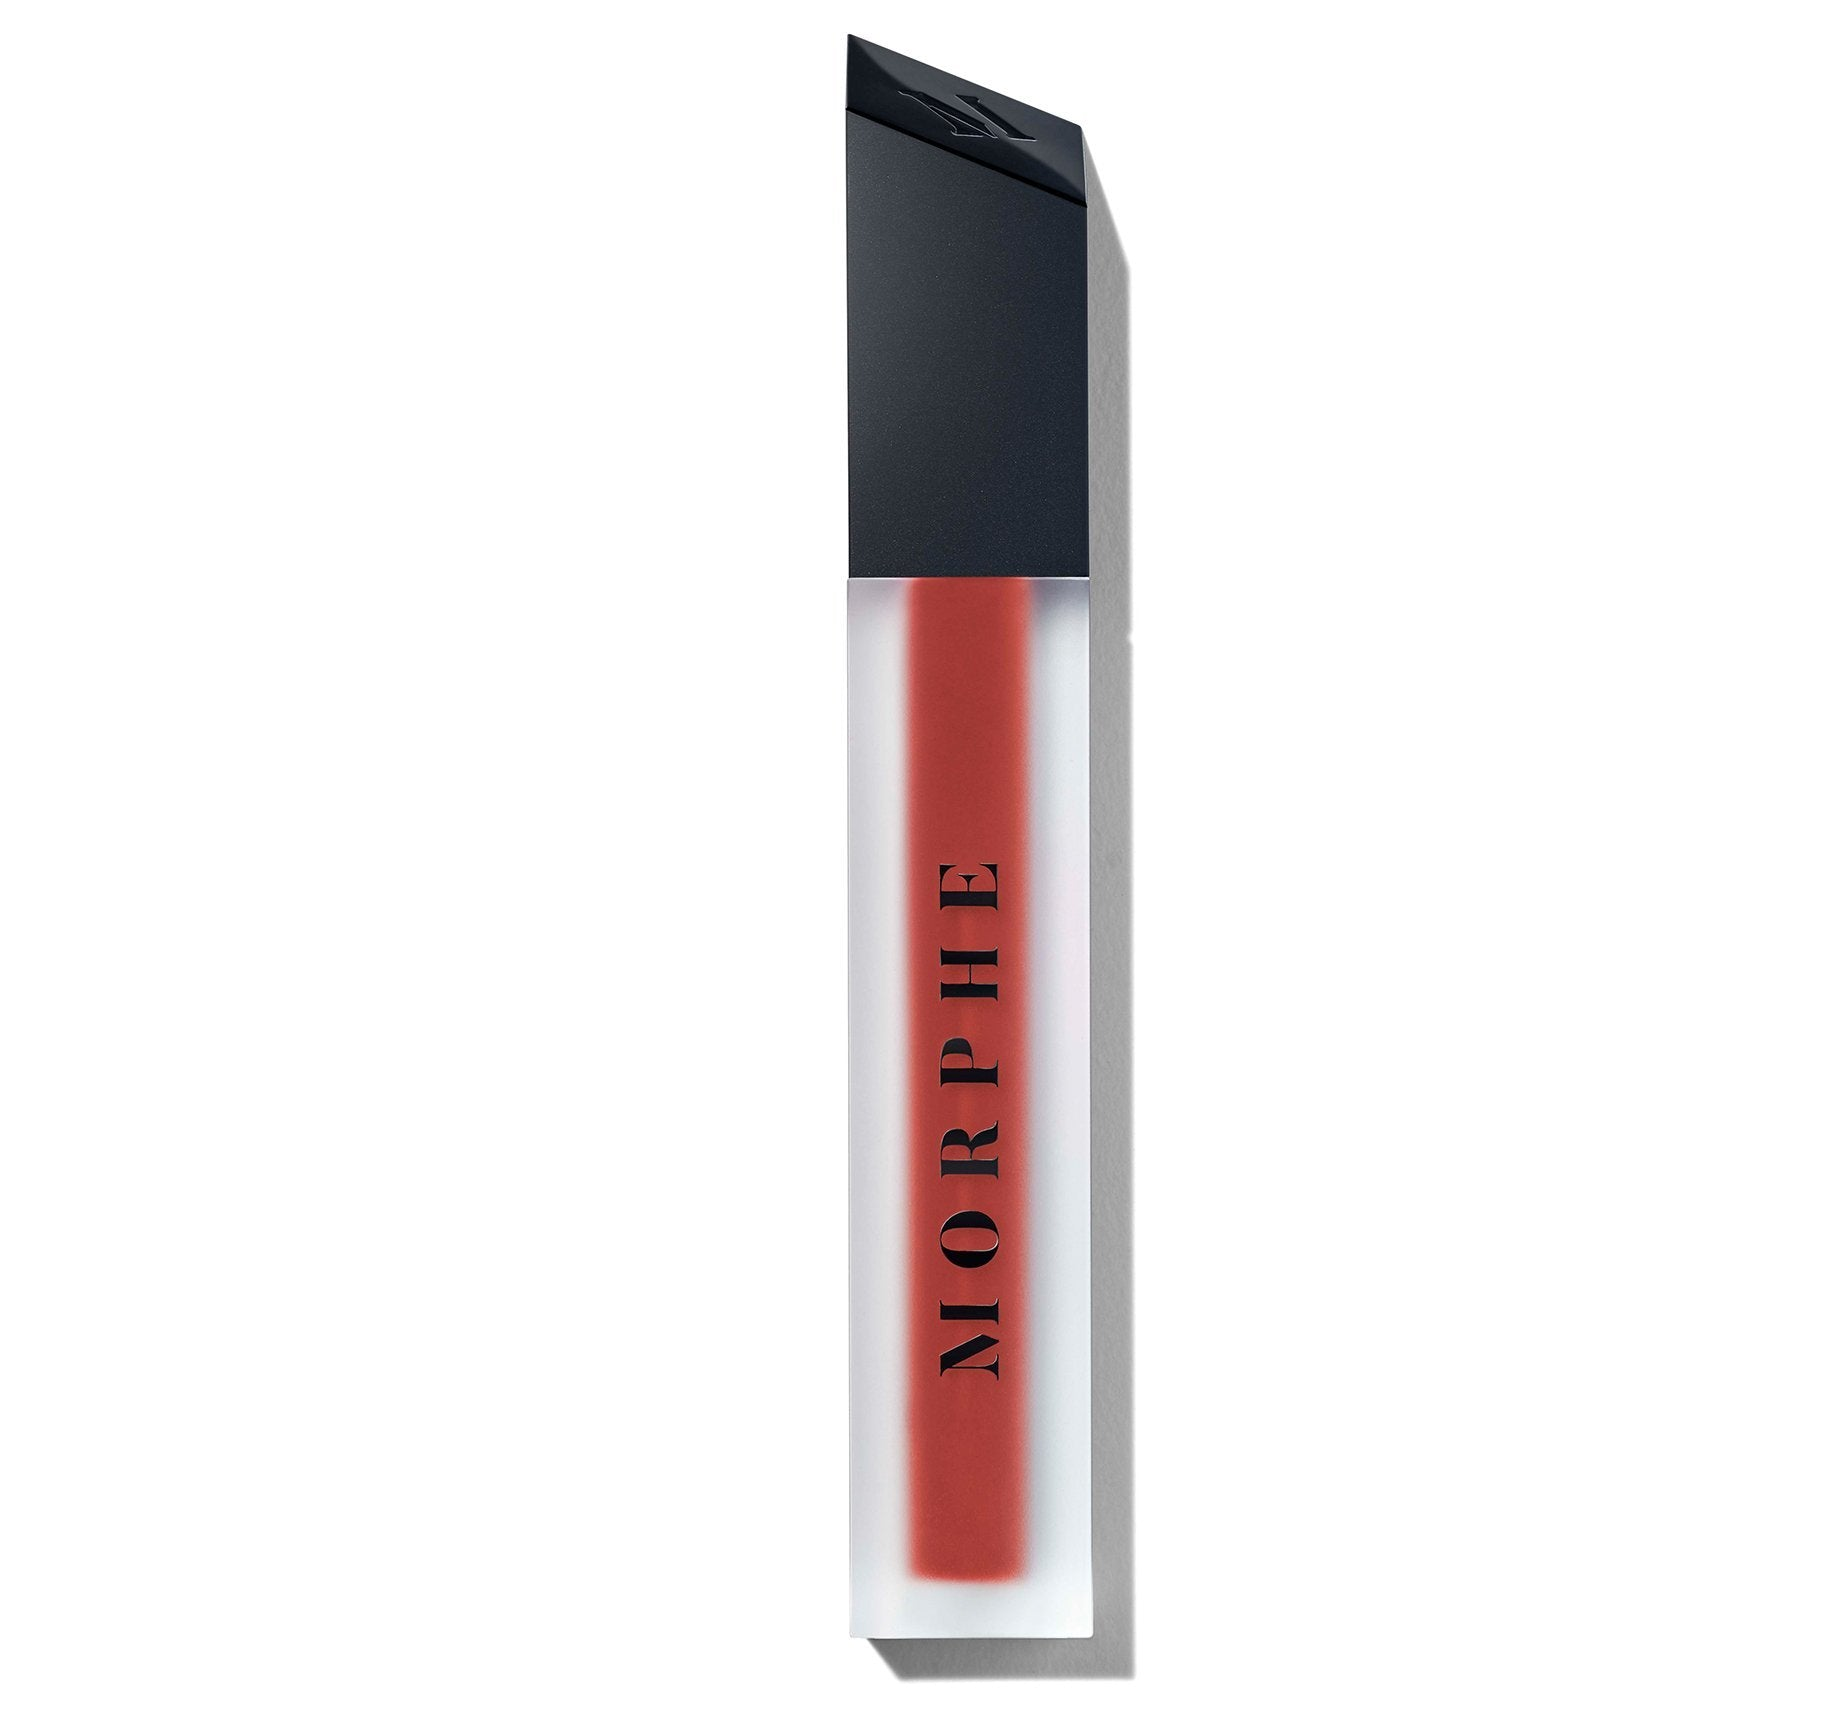 MATTE LIQUID LIPSTICK - NIBBLE, view larger image